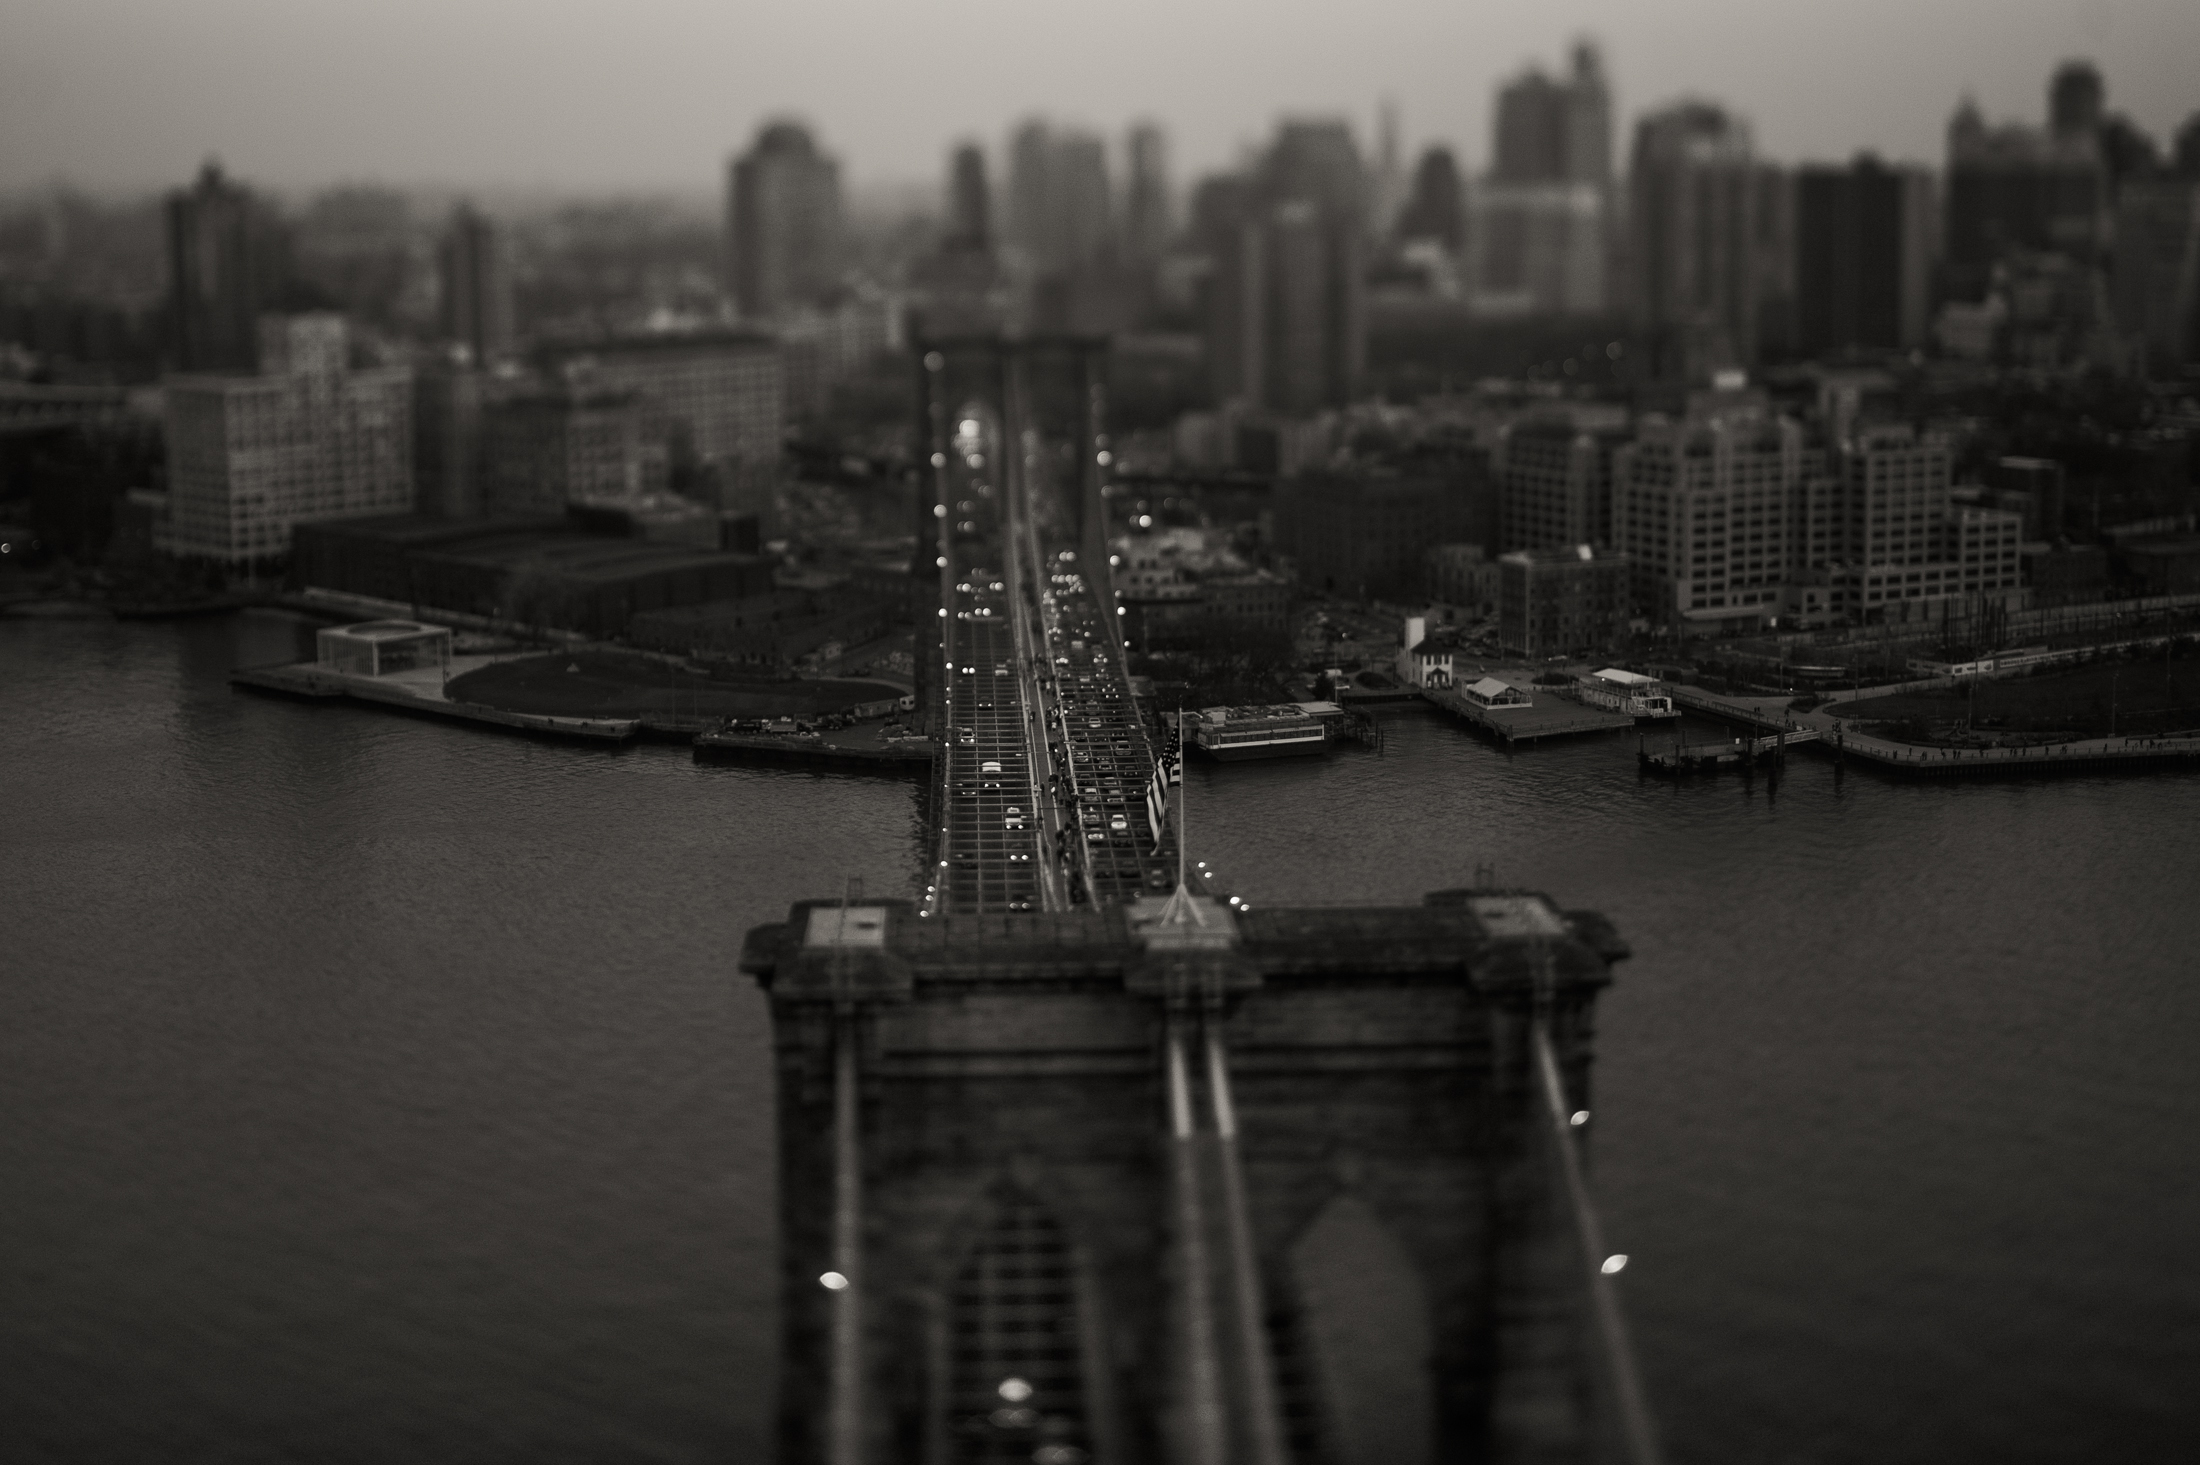 Above the Brooklyn Bridge